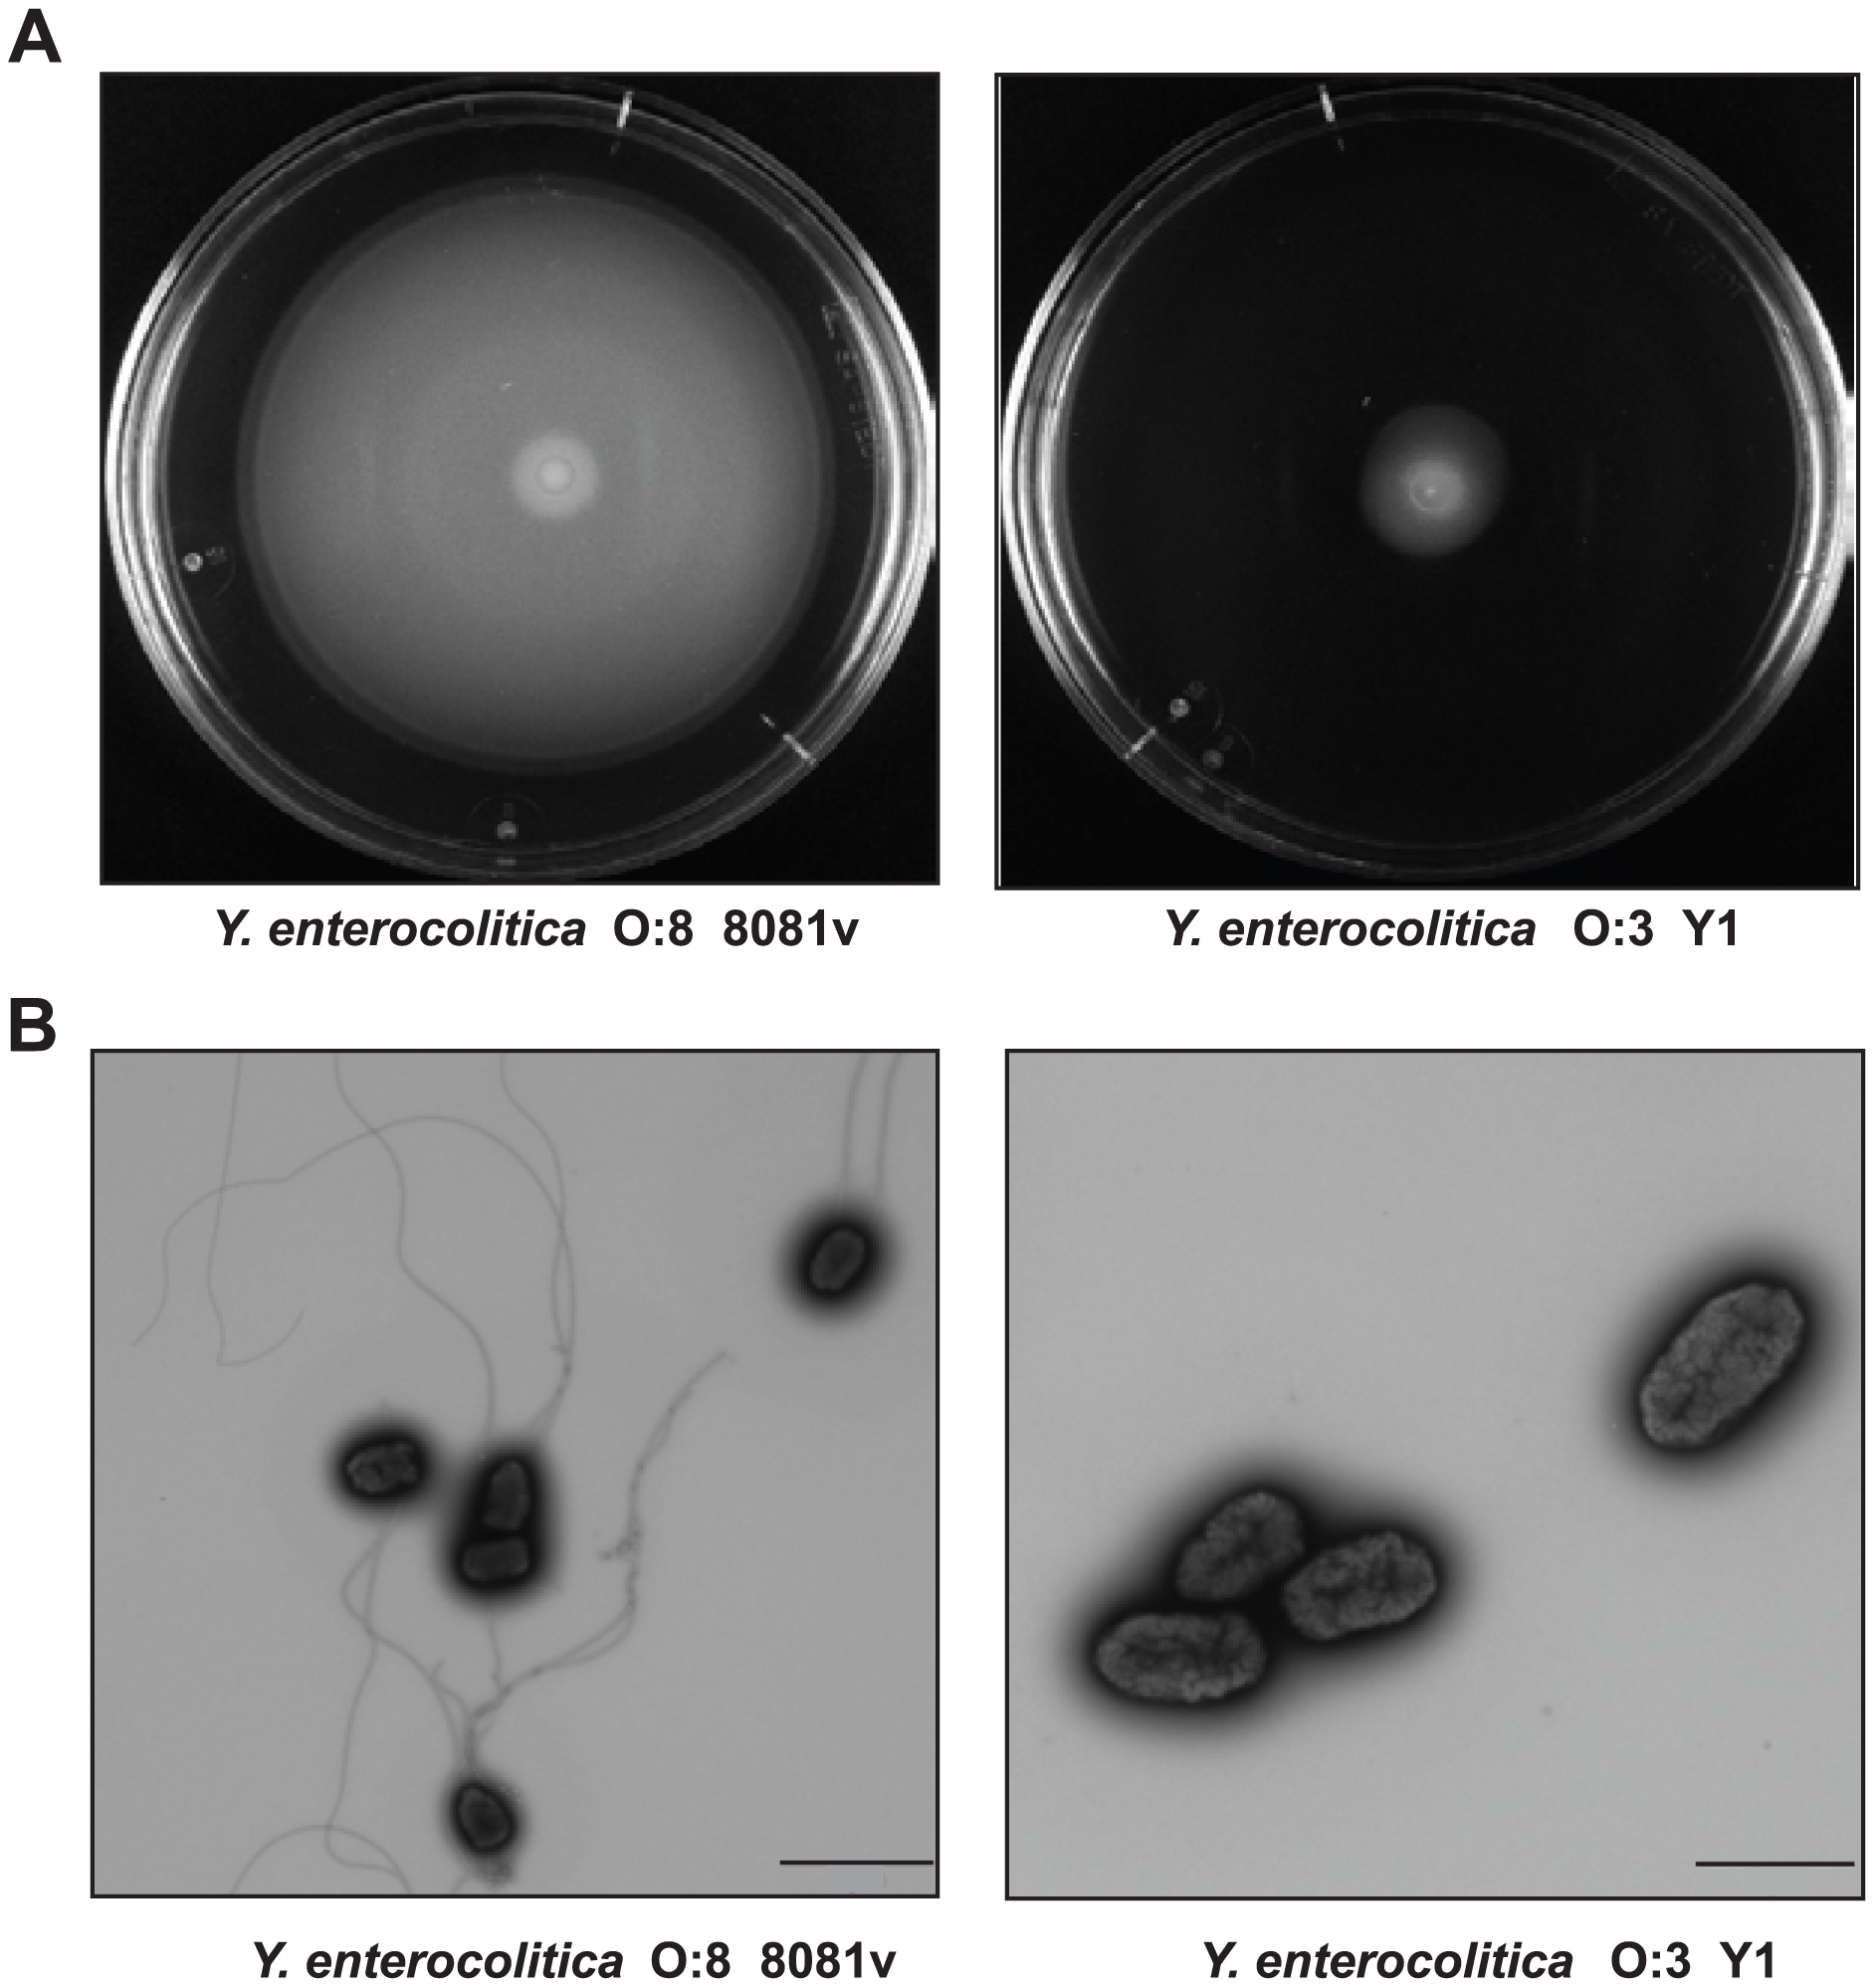 Motility and flagellation of <i>Y. enterocolitica</i> O:3 and O:8.